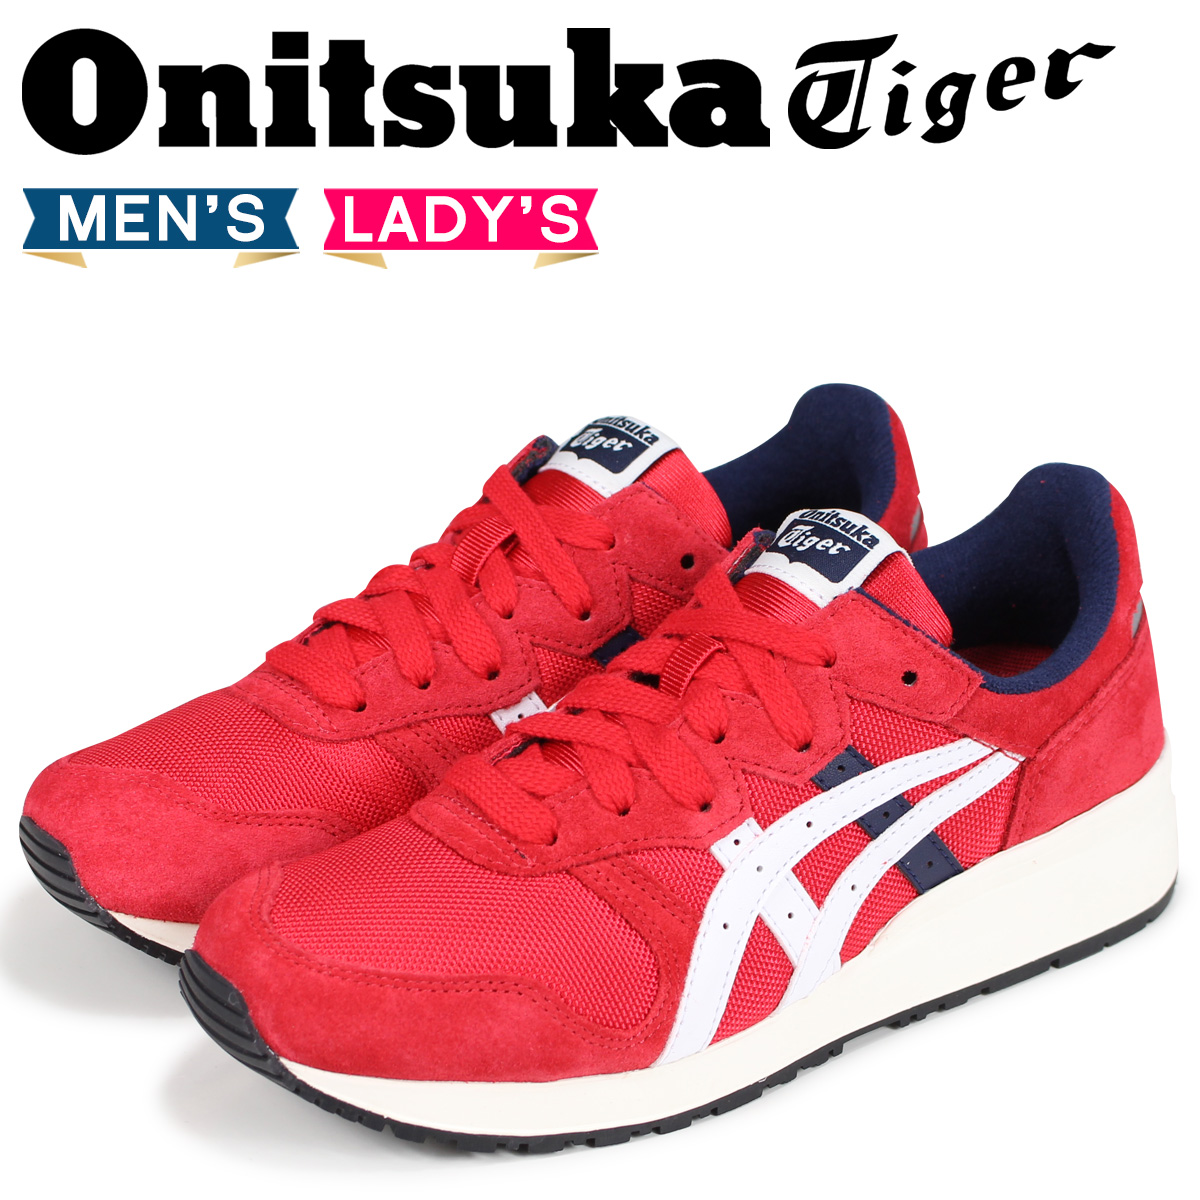 the best attitude 050e6 ad6a1 Onitsuka Tiger tiger Alley Onitsuka tiger TIGER ALLY men gap Dis sneakers  1183A029-600 red red